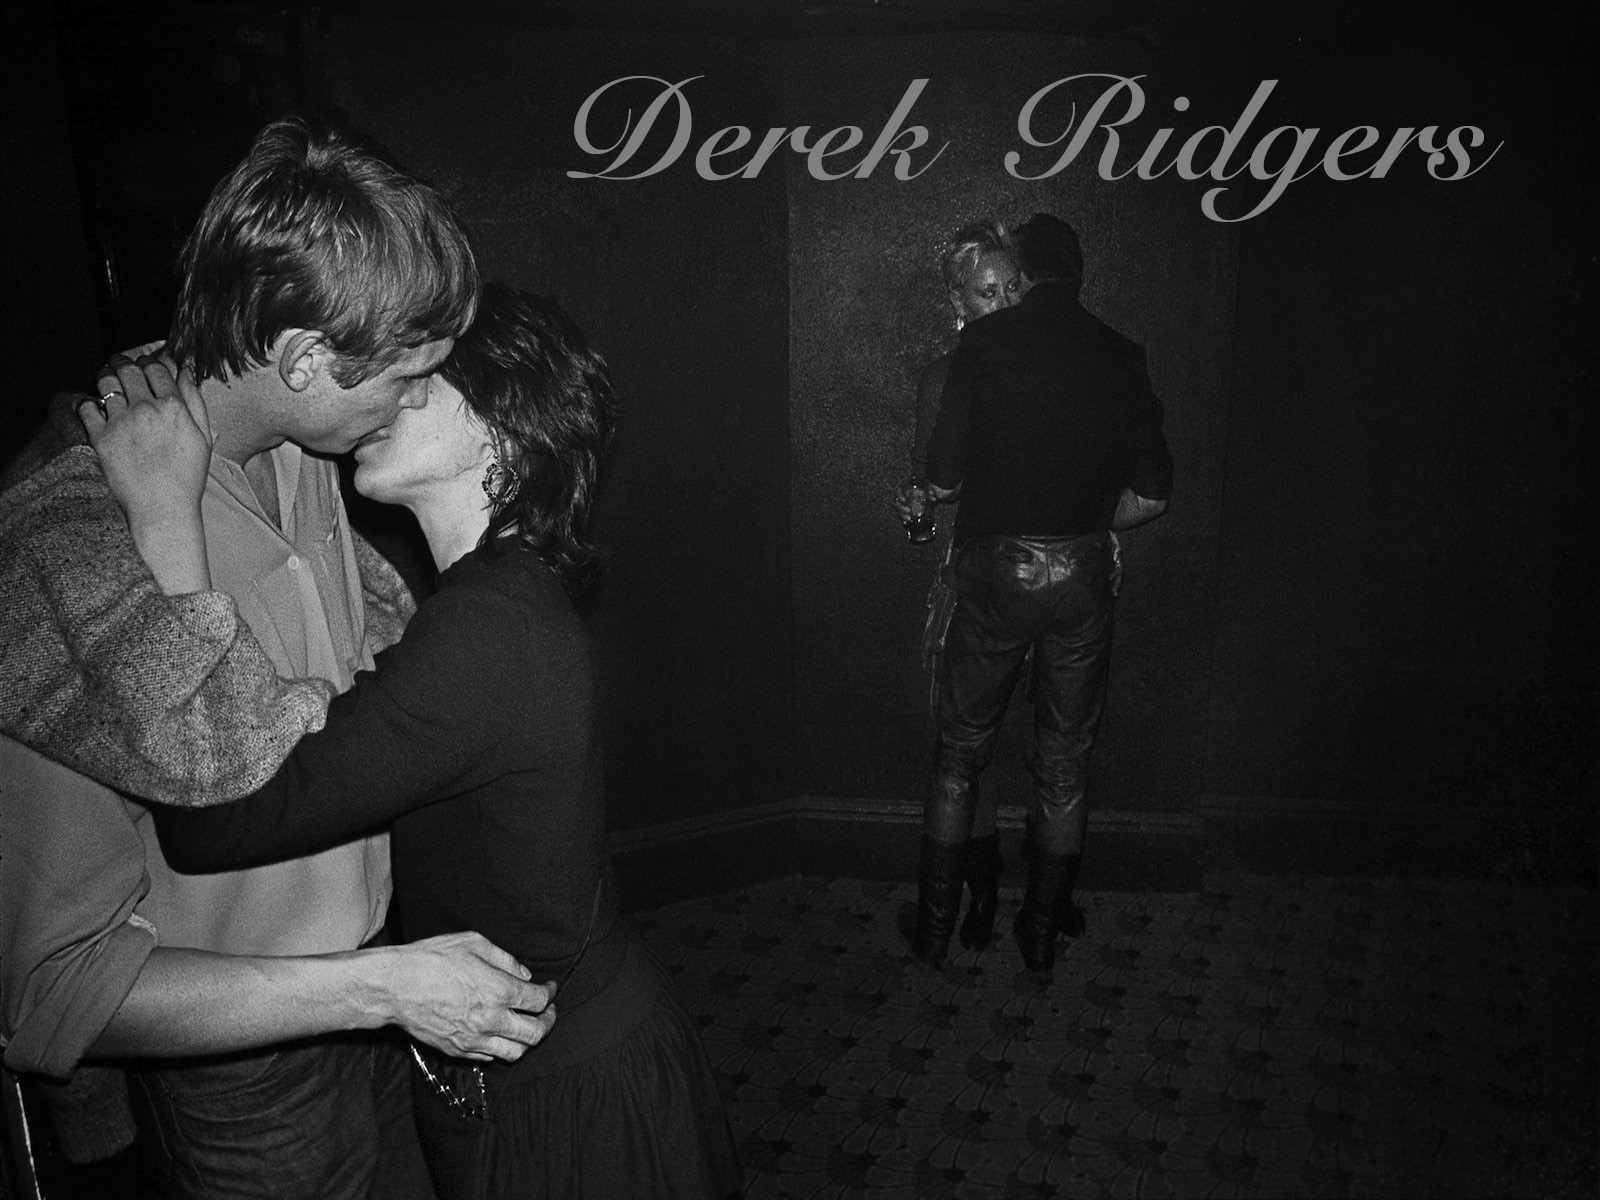 DEREK RIDGERS – THE OTHERS